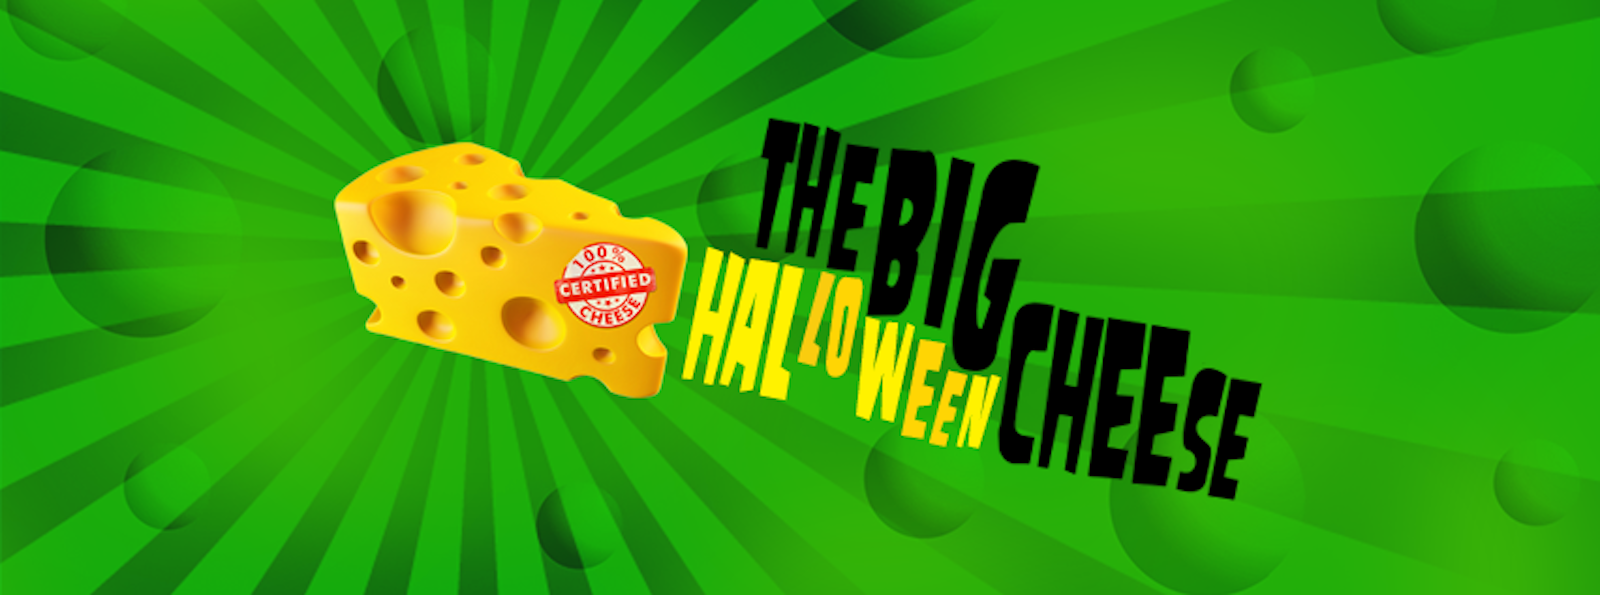 The Big Halloween Cheese!